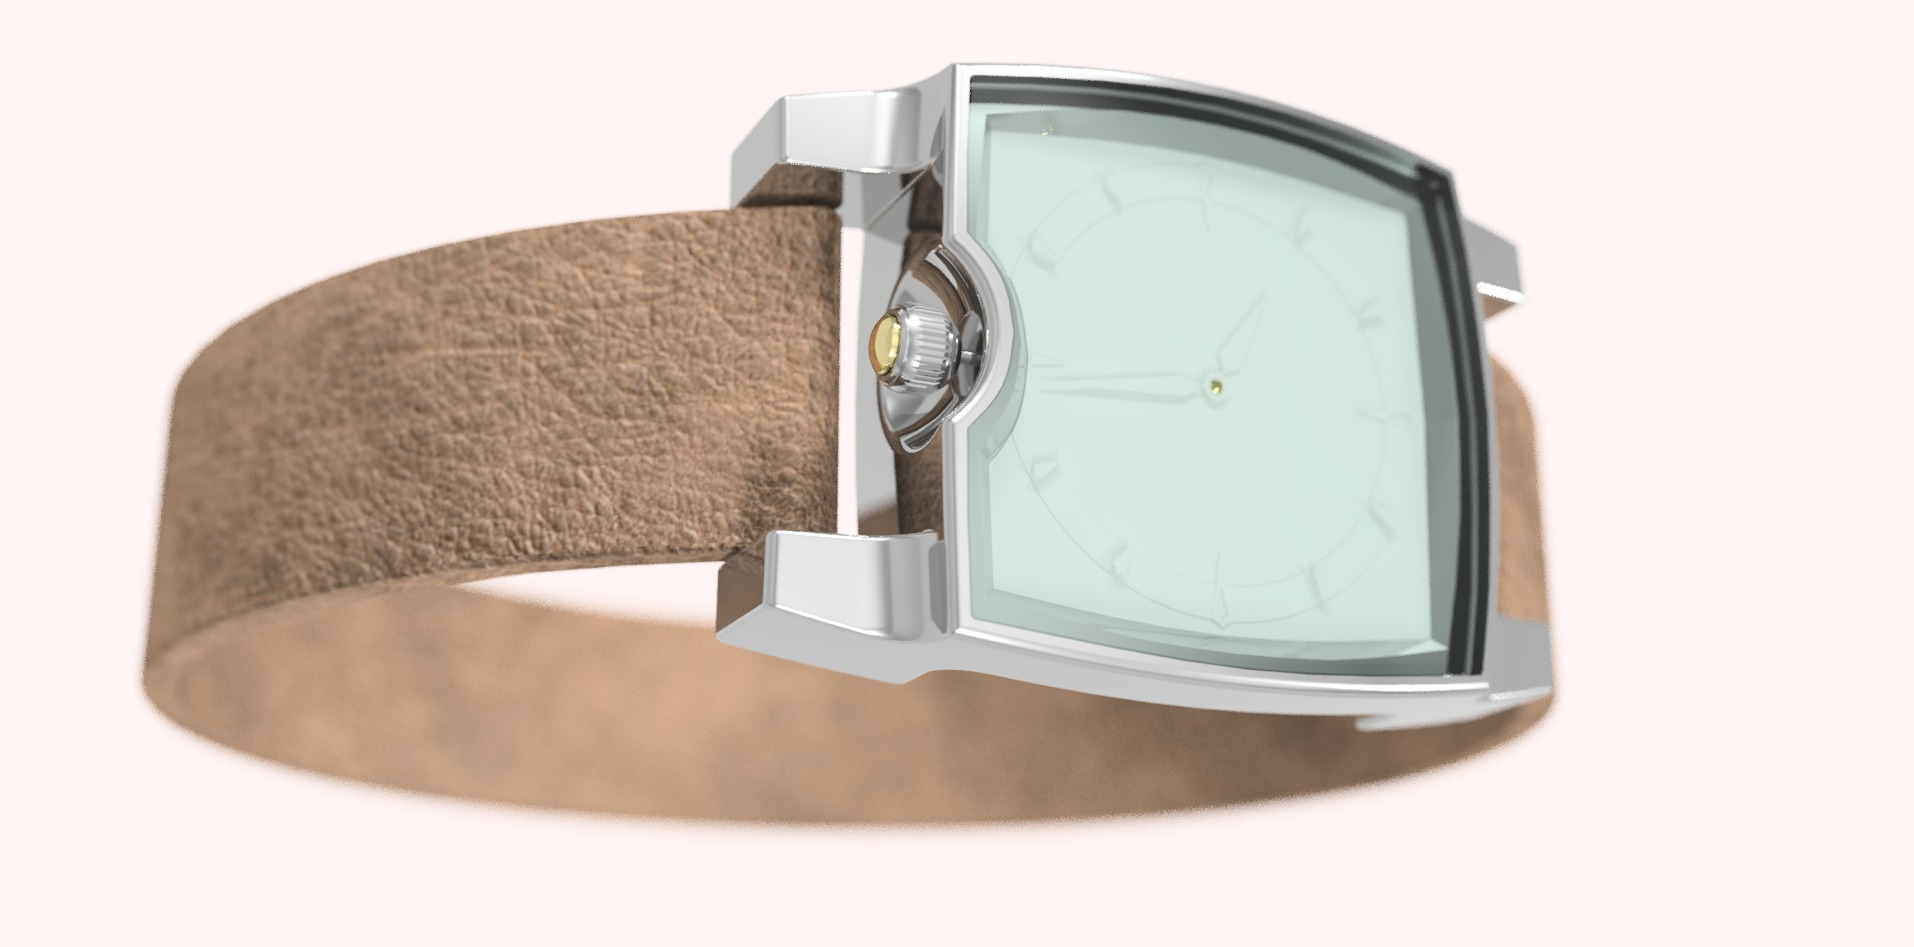 Square_watch_perspective_view2